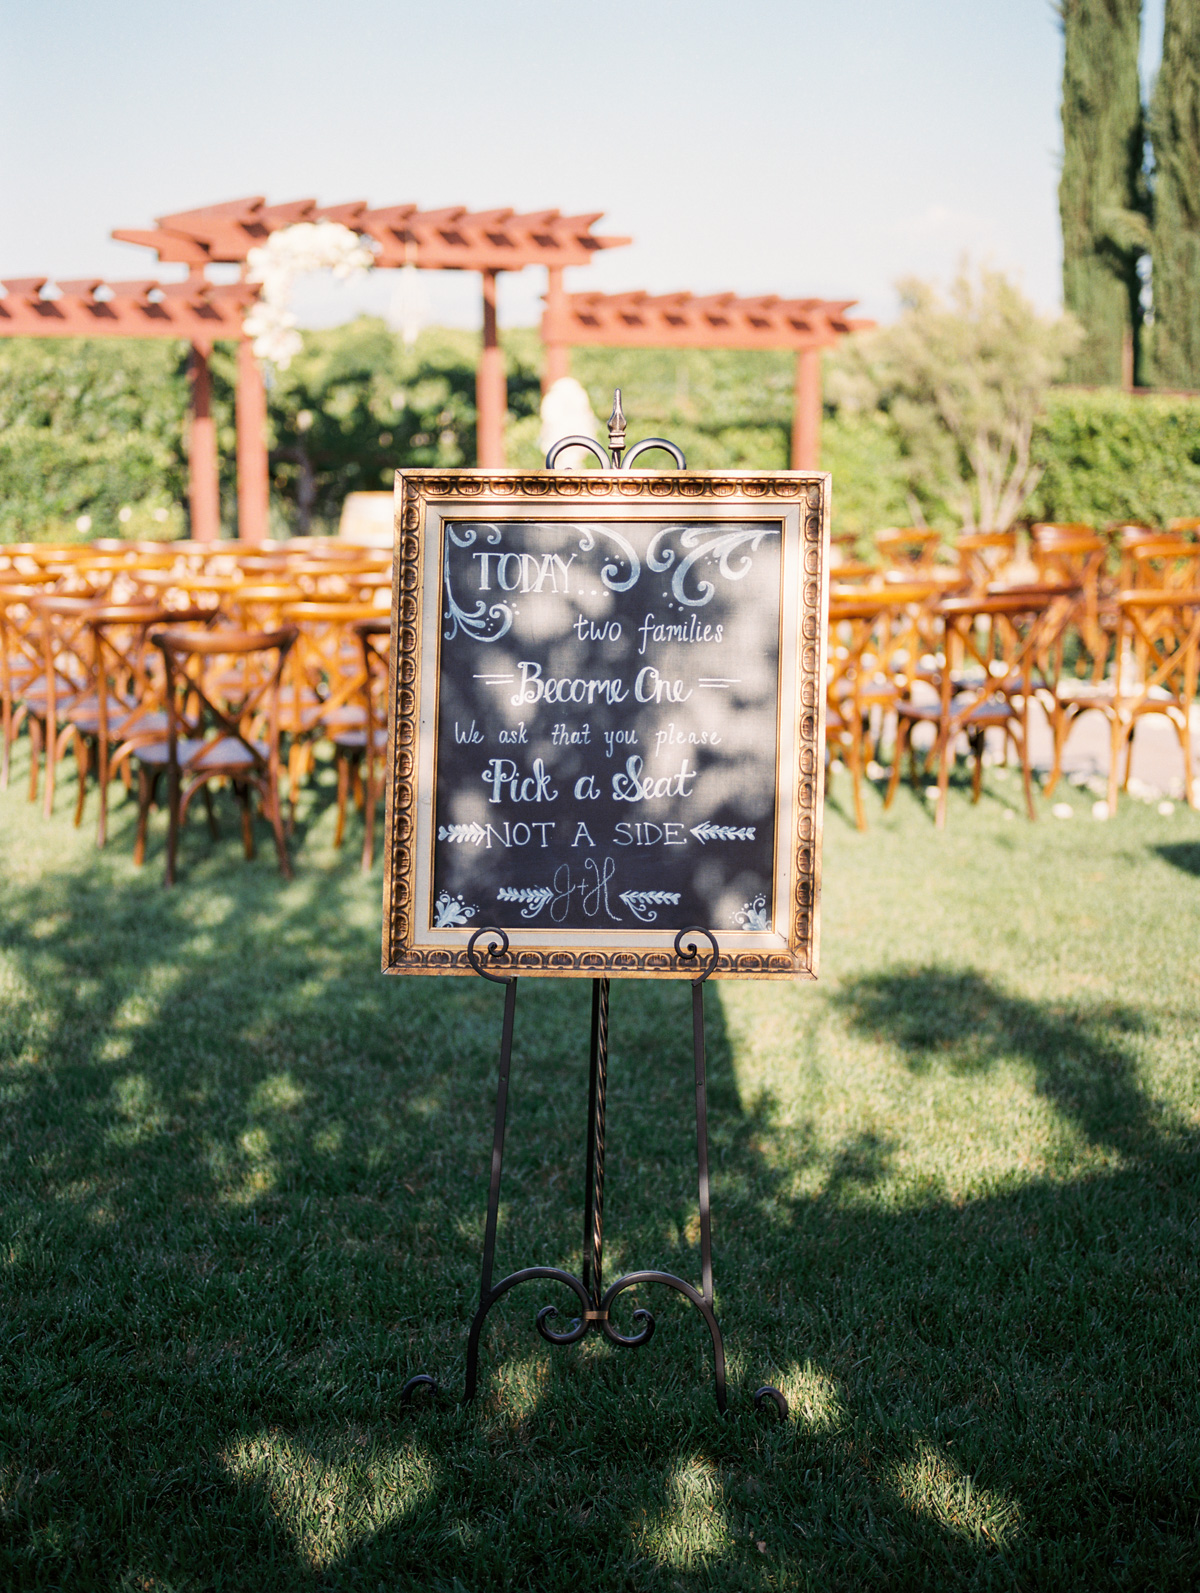 Wedding ceremony chalkboard at Harrison & Jocelyne's gorgeous Temecula wedding at Wiens Family Cellars captured by Betsy & John Photography | Temecula Film Photographers